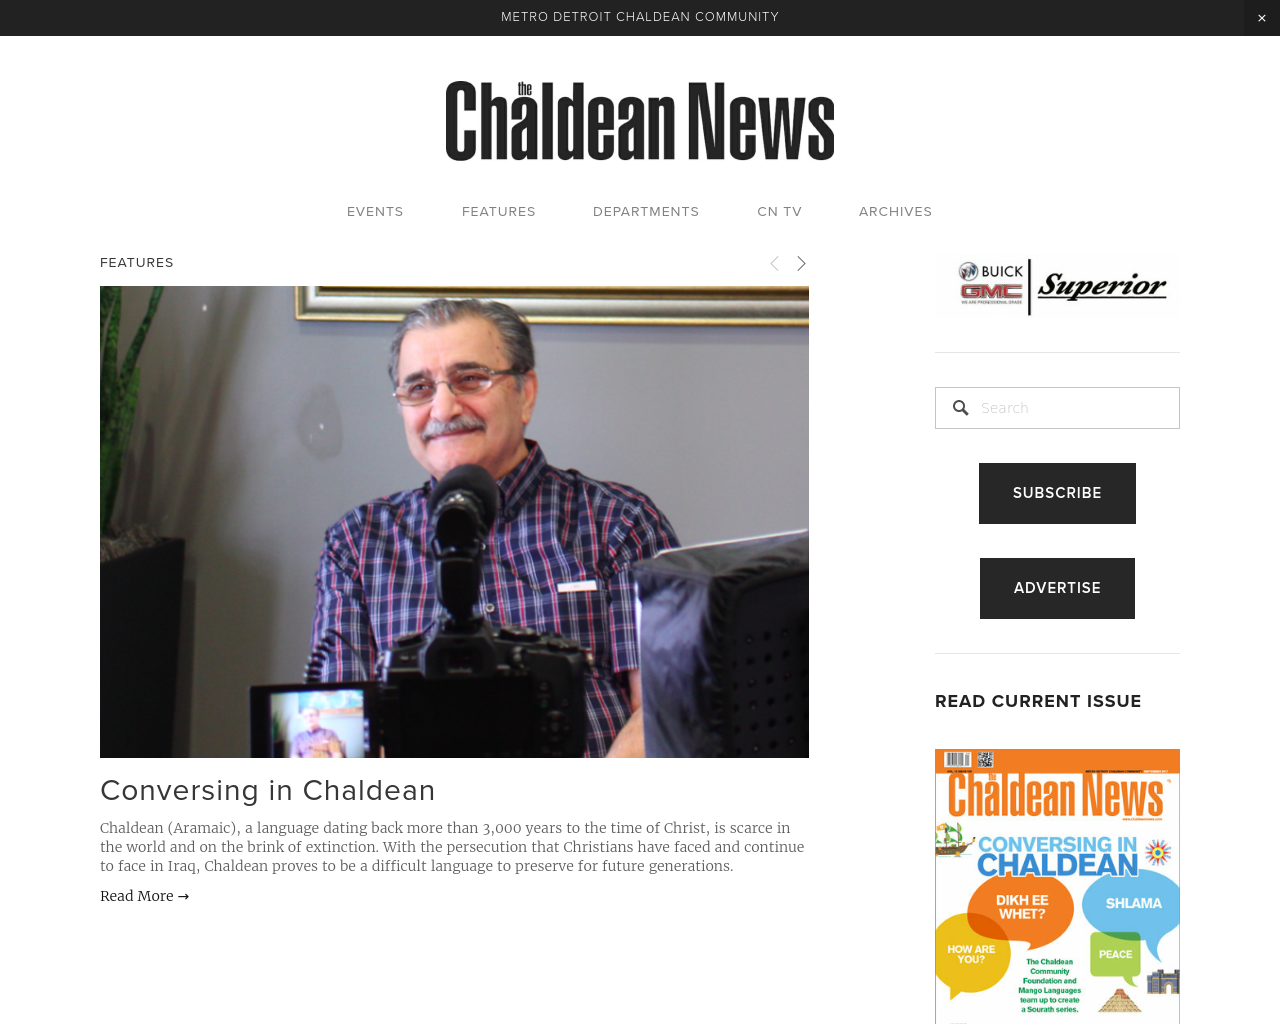 Chaldean-News-Advertising-Reviews-Pricing